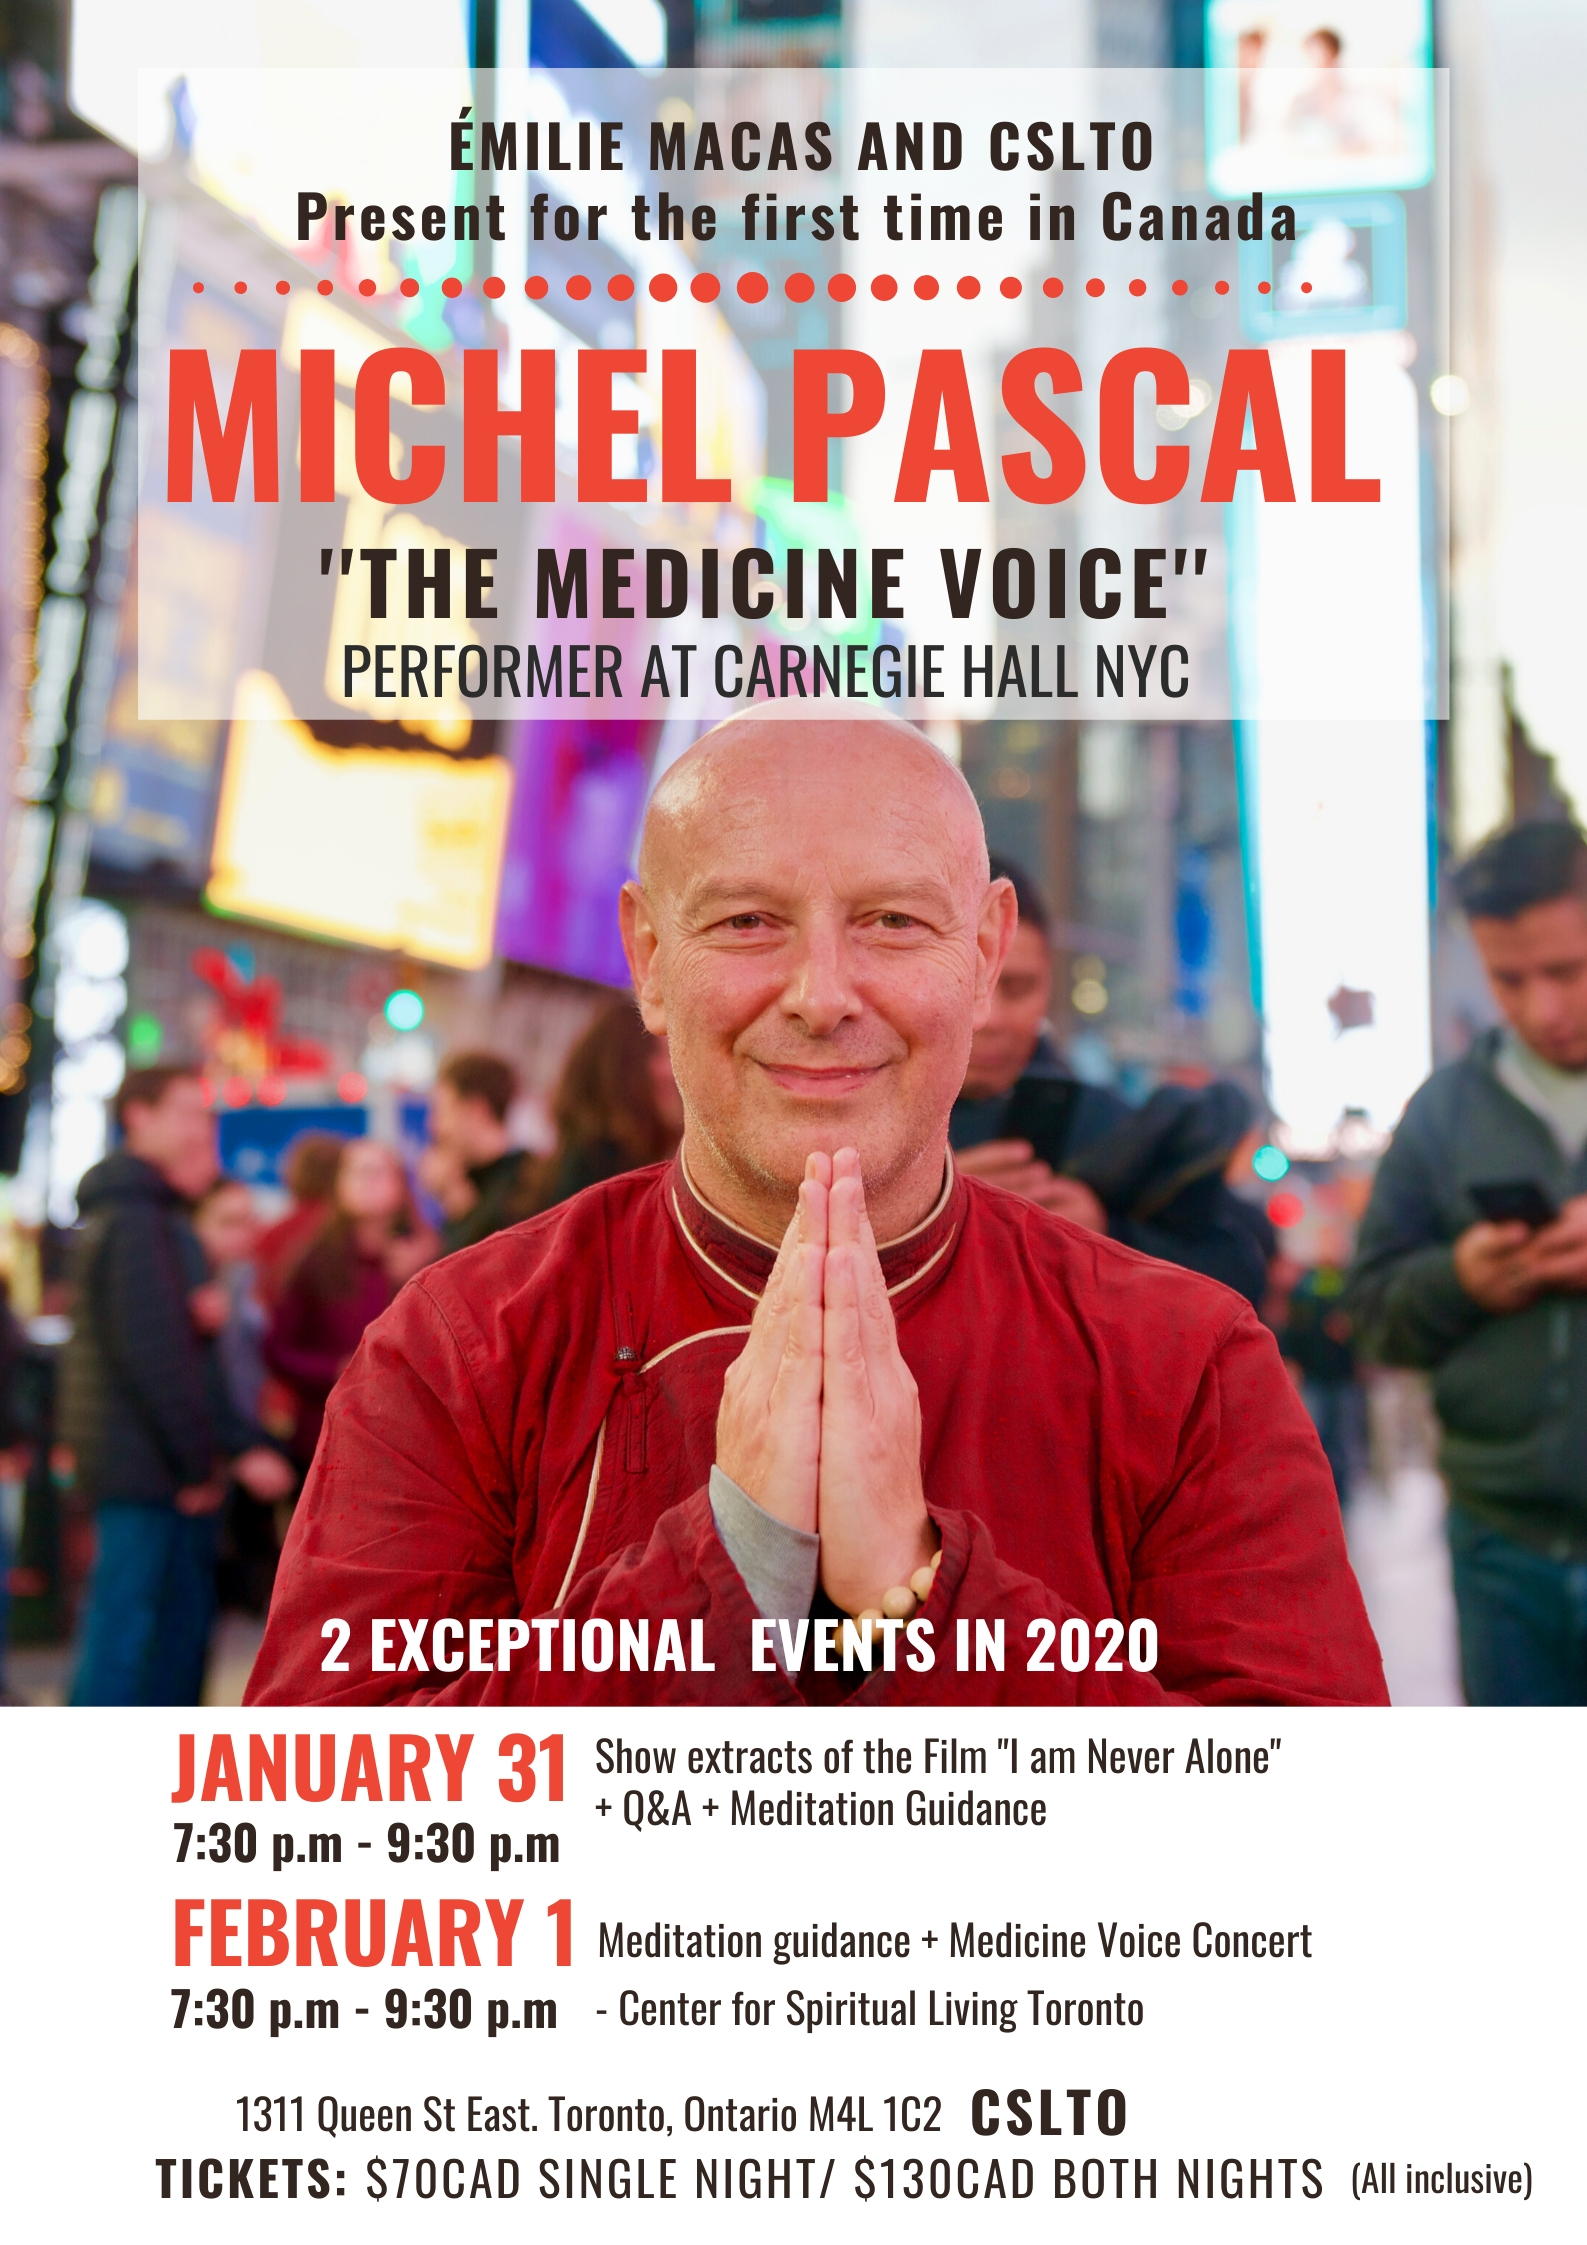 Michel Pascal at center for spiritual living toronto